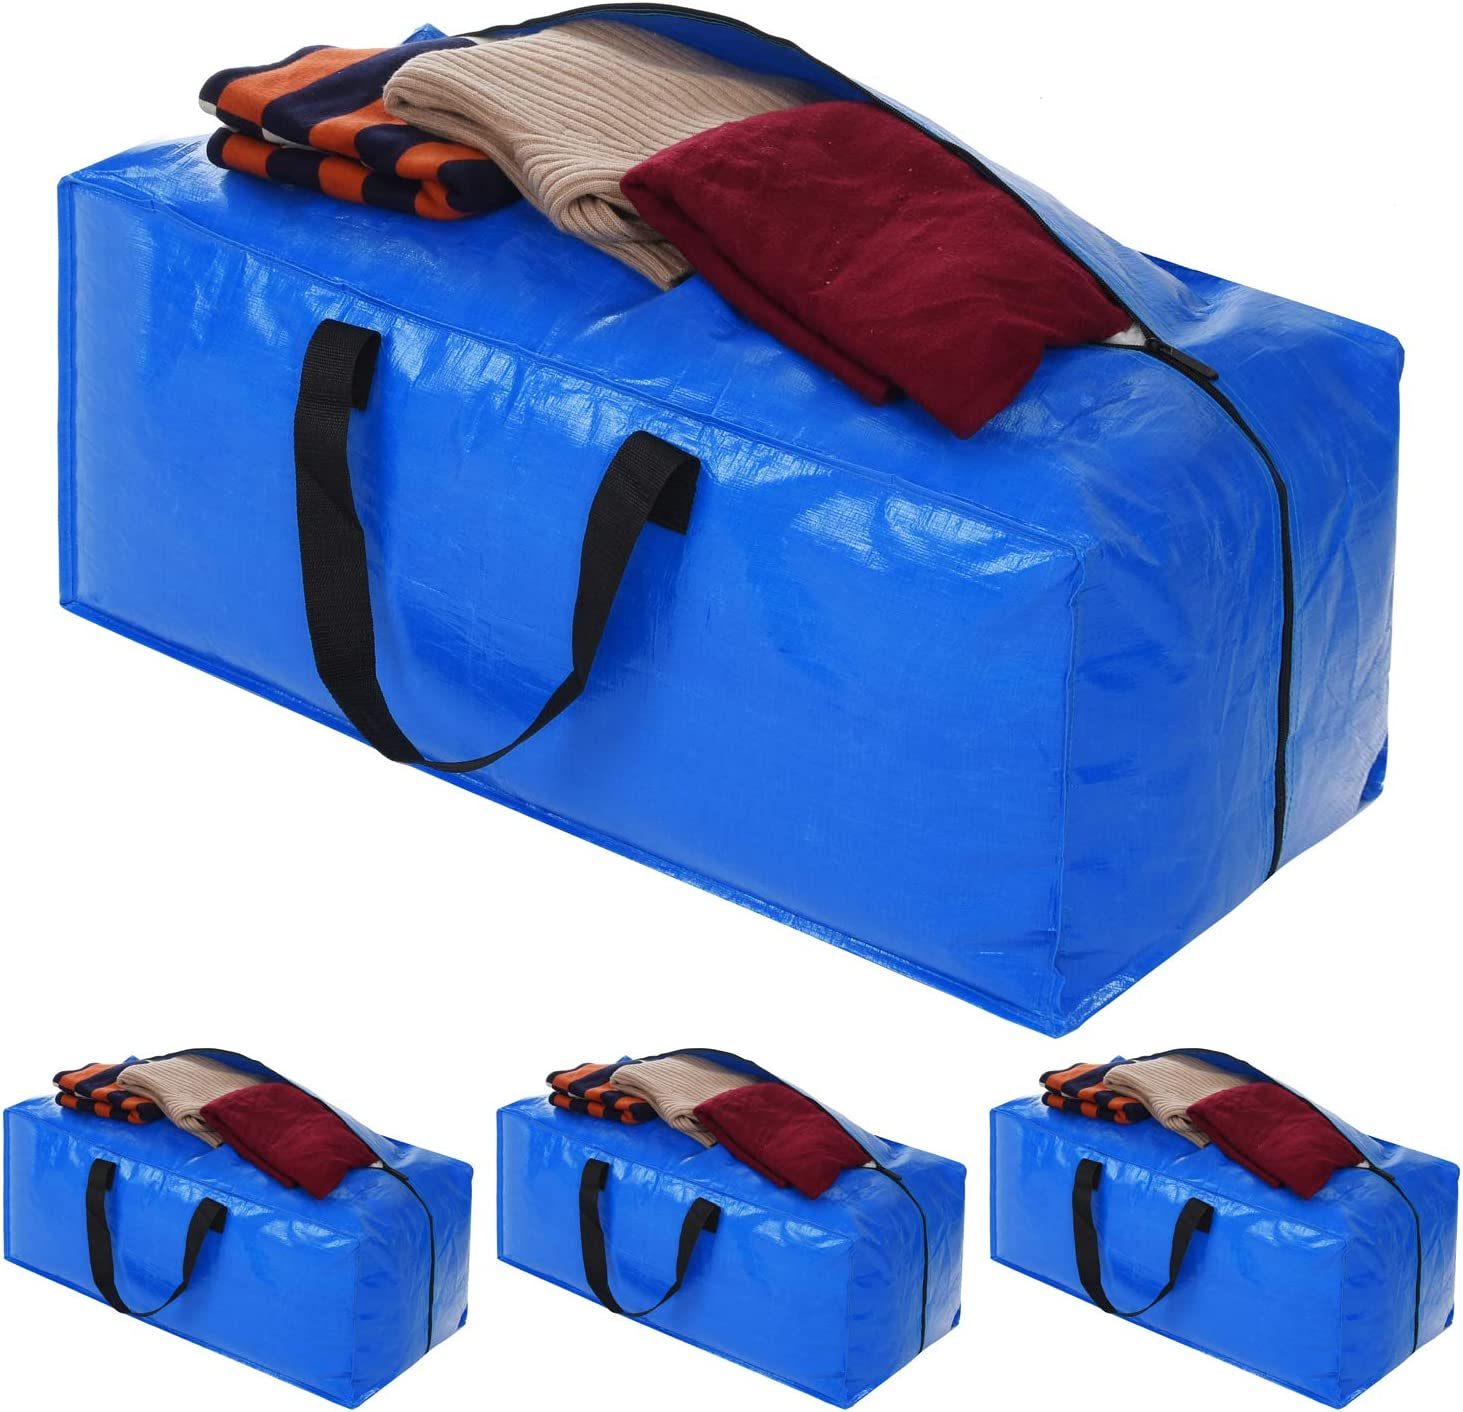 Heavy Duty Extra Large Storage Bags, XL Blue Moving Bags Totes with Zippers for Clothing Storage, Comforter, Blankets, College Moving , Cloth Storage Bags Compatible with Ikea Frakta Cart, 4 Packs